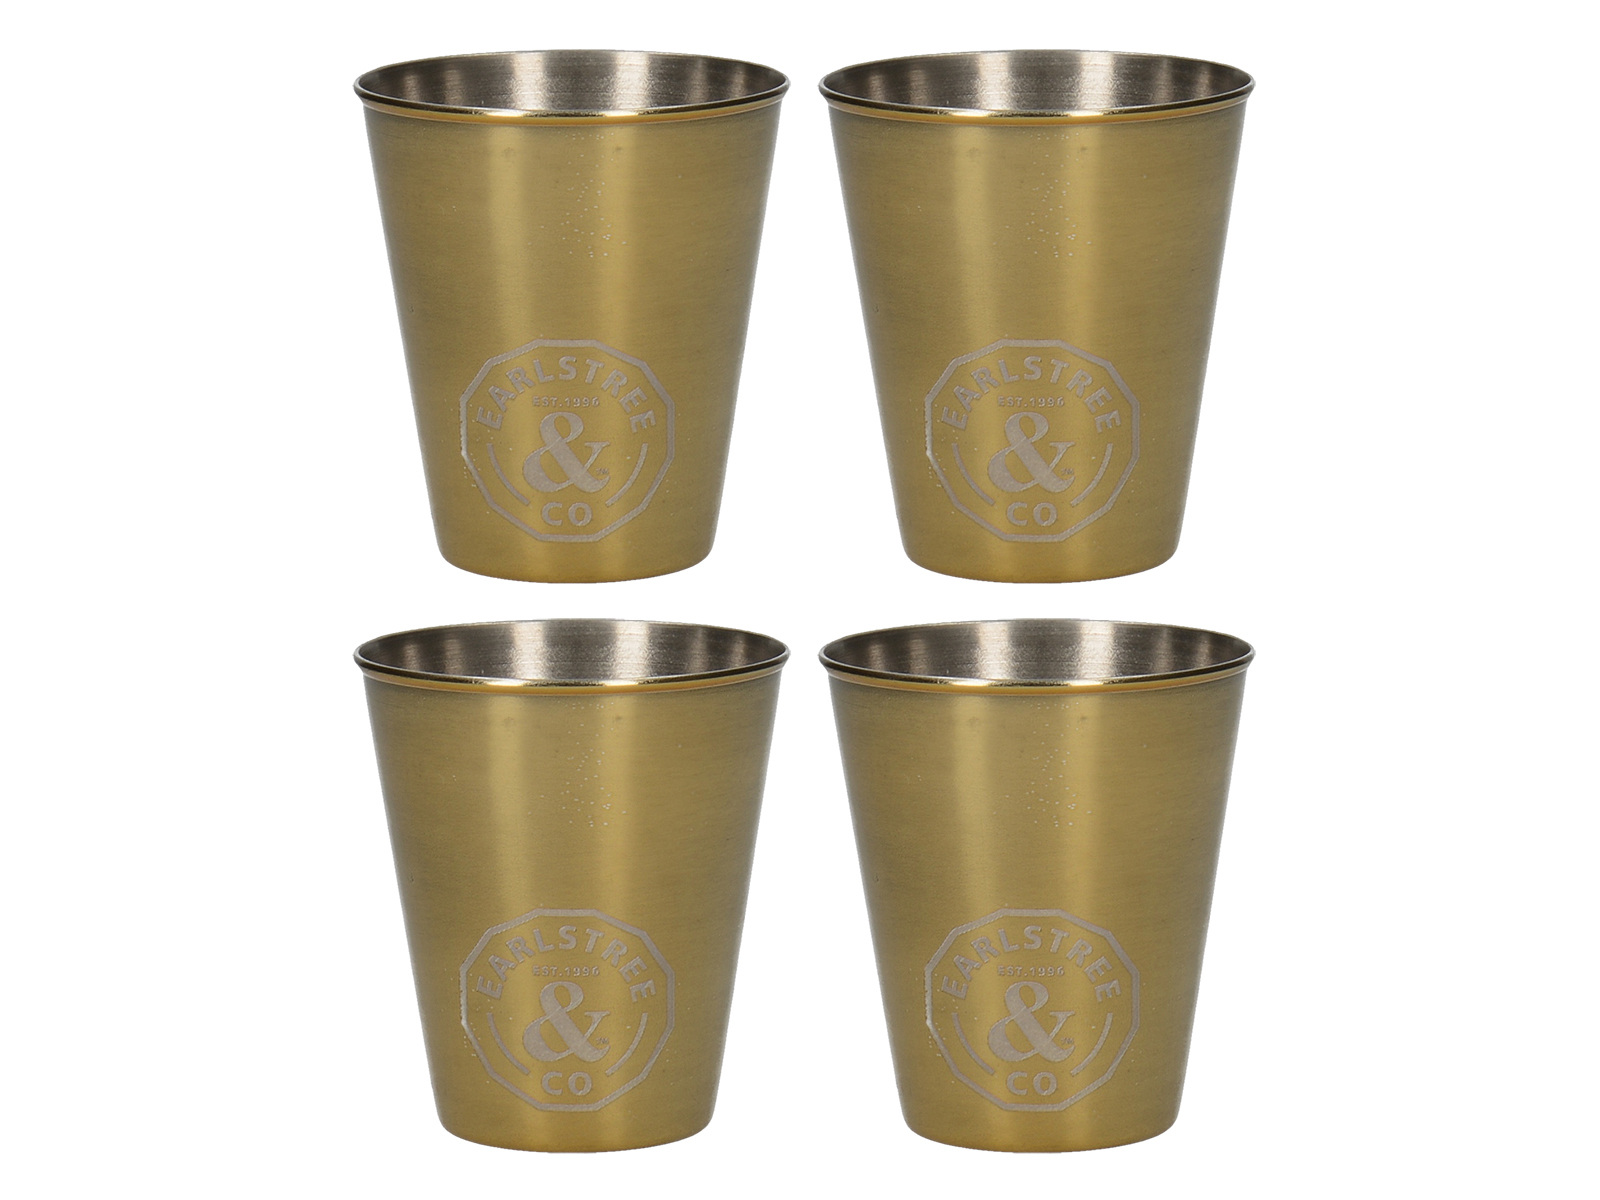 Creative Tops Earlstree & Co Set Of 2 Stainless Steel Shot Glasses